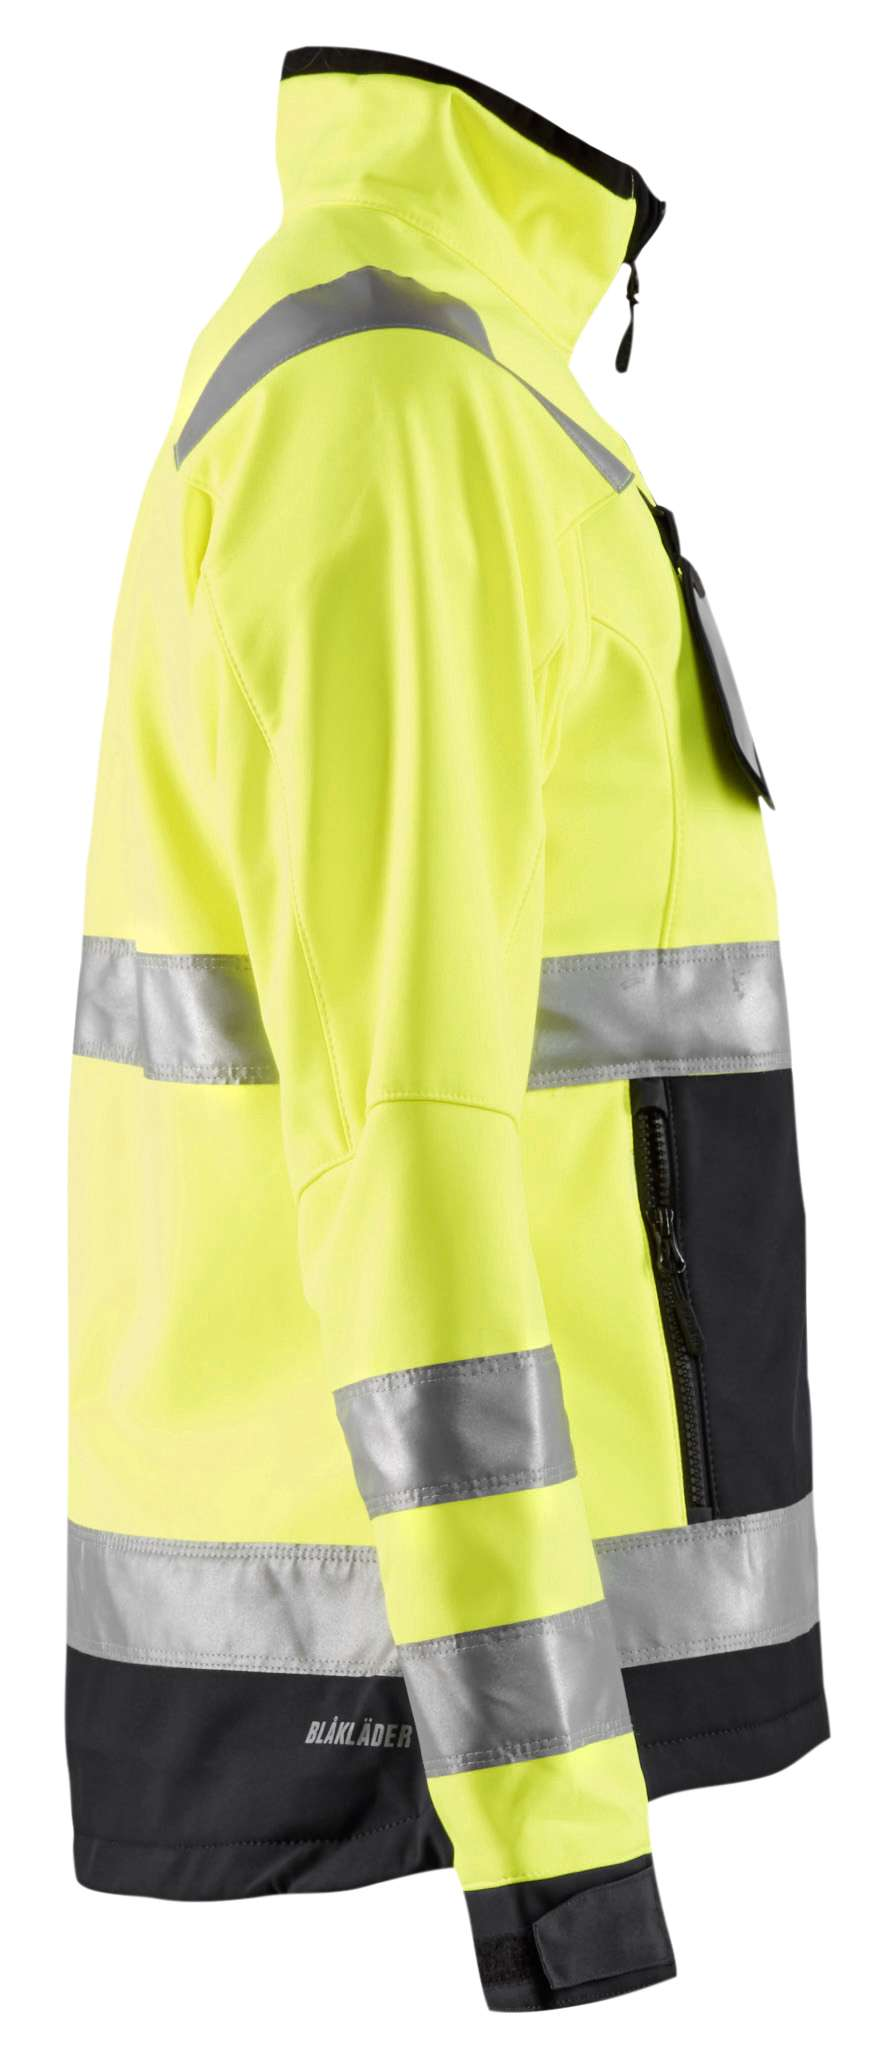 Blaklader Dames softshell jacks 49022517 High Vis geel-zwart(3399)